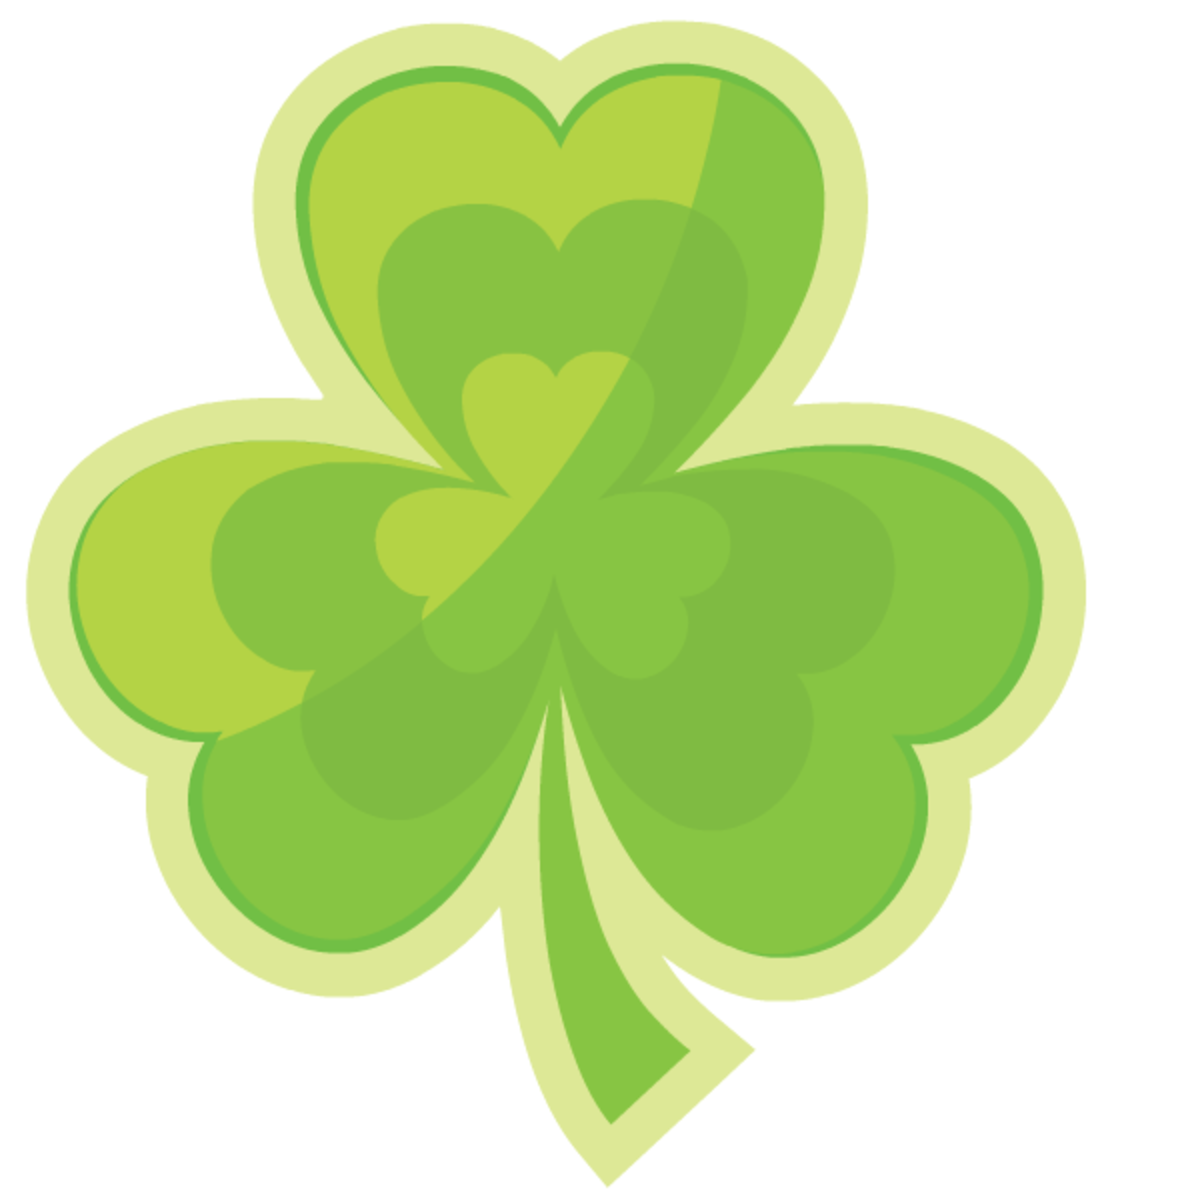 One green shamrock